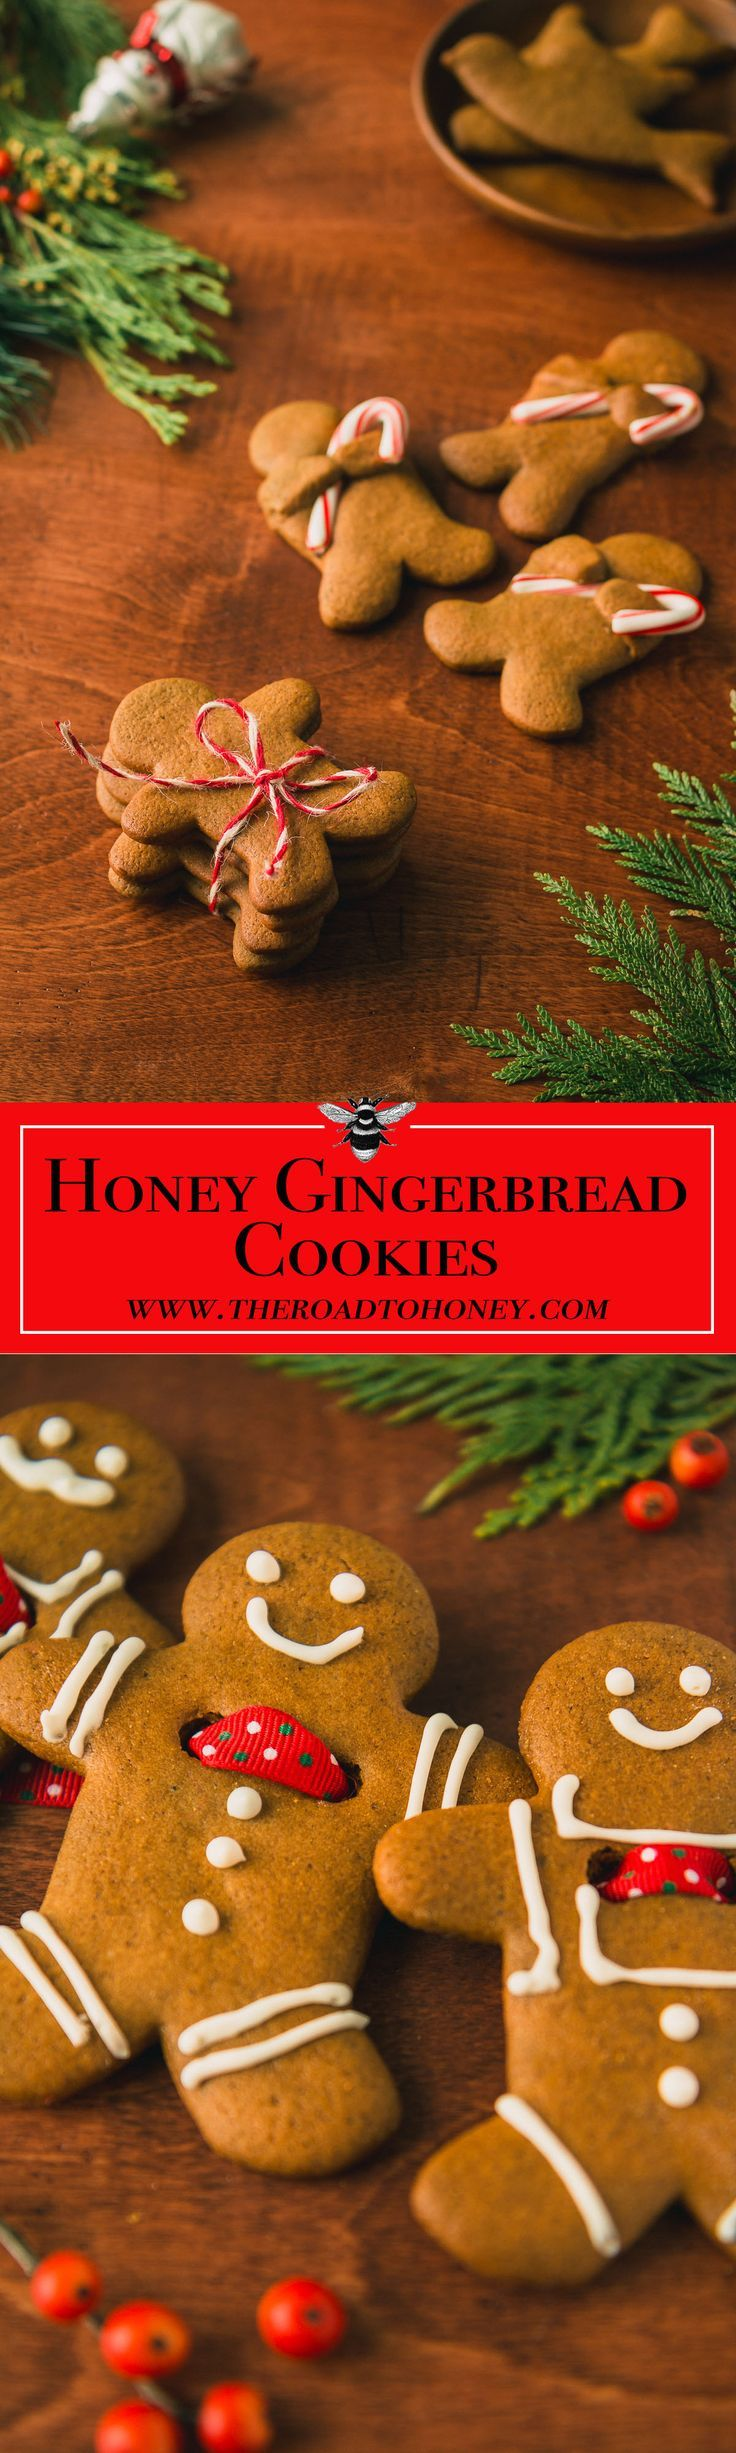 Honey Gingerbread Cookies with Lemon Icing - Nothing says Christmas more than the warm, spicy notes of Honey Gingerbread Cookies with Lemon Icing. This recipe contains honey making it extra special.